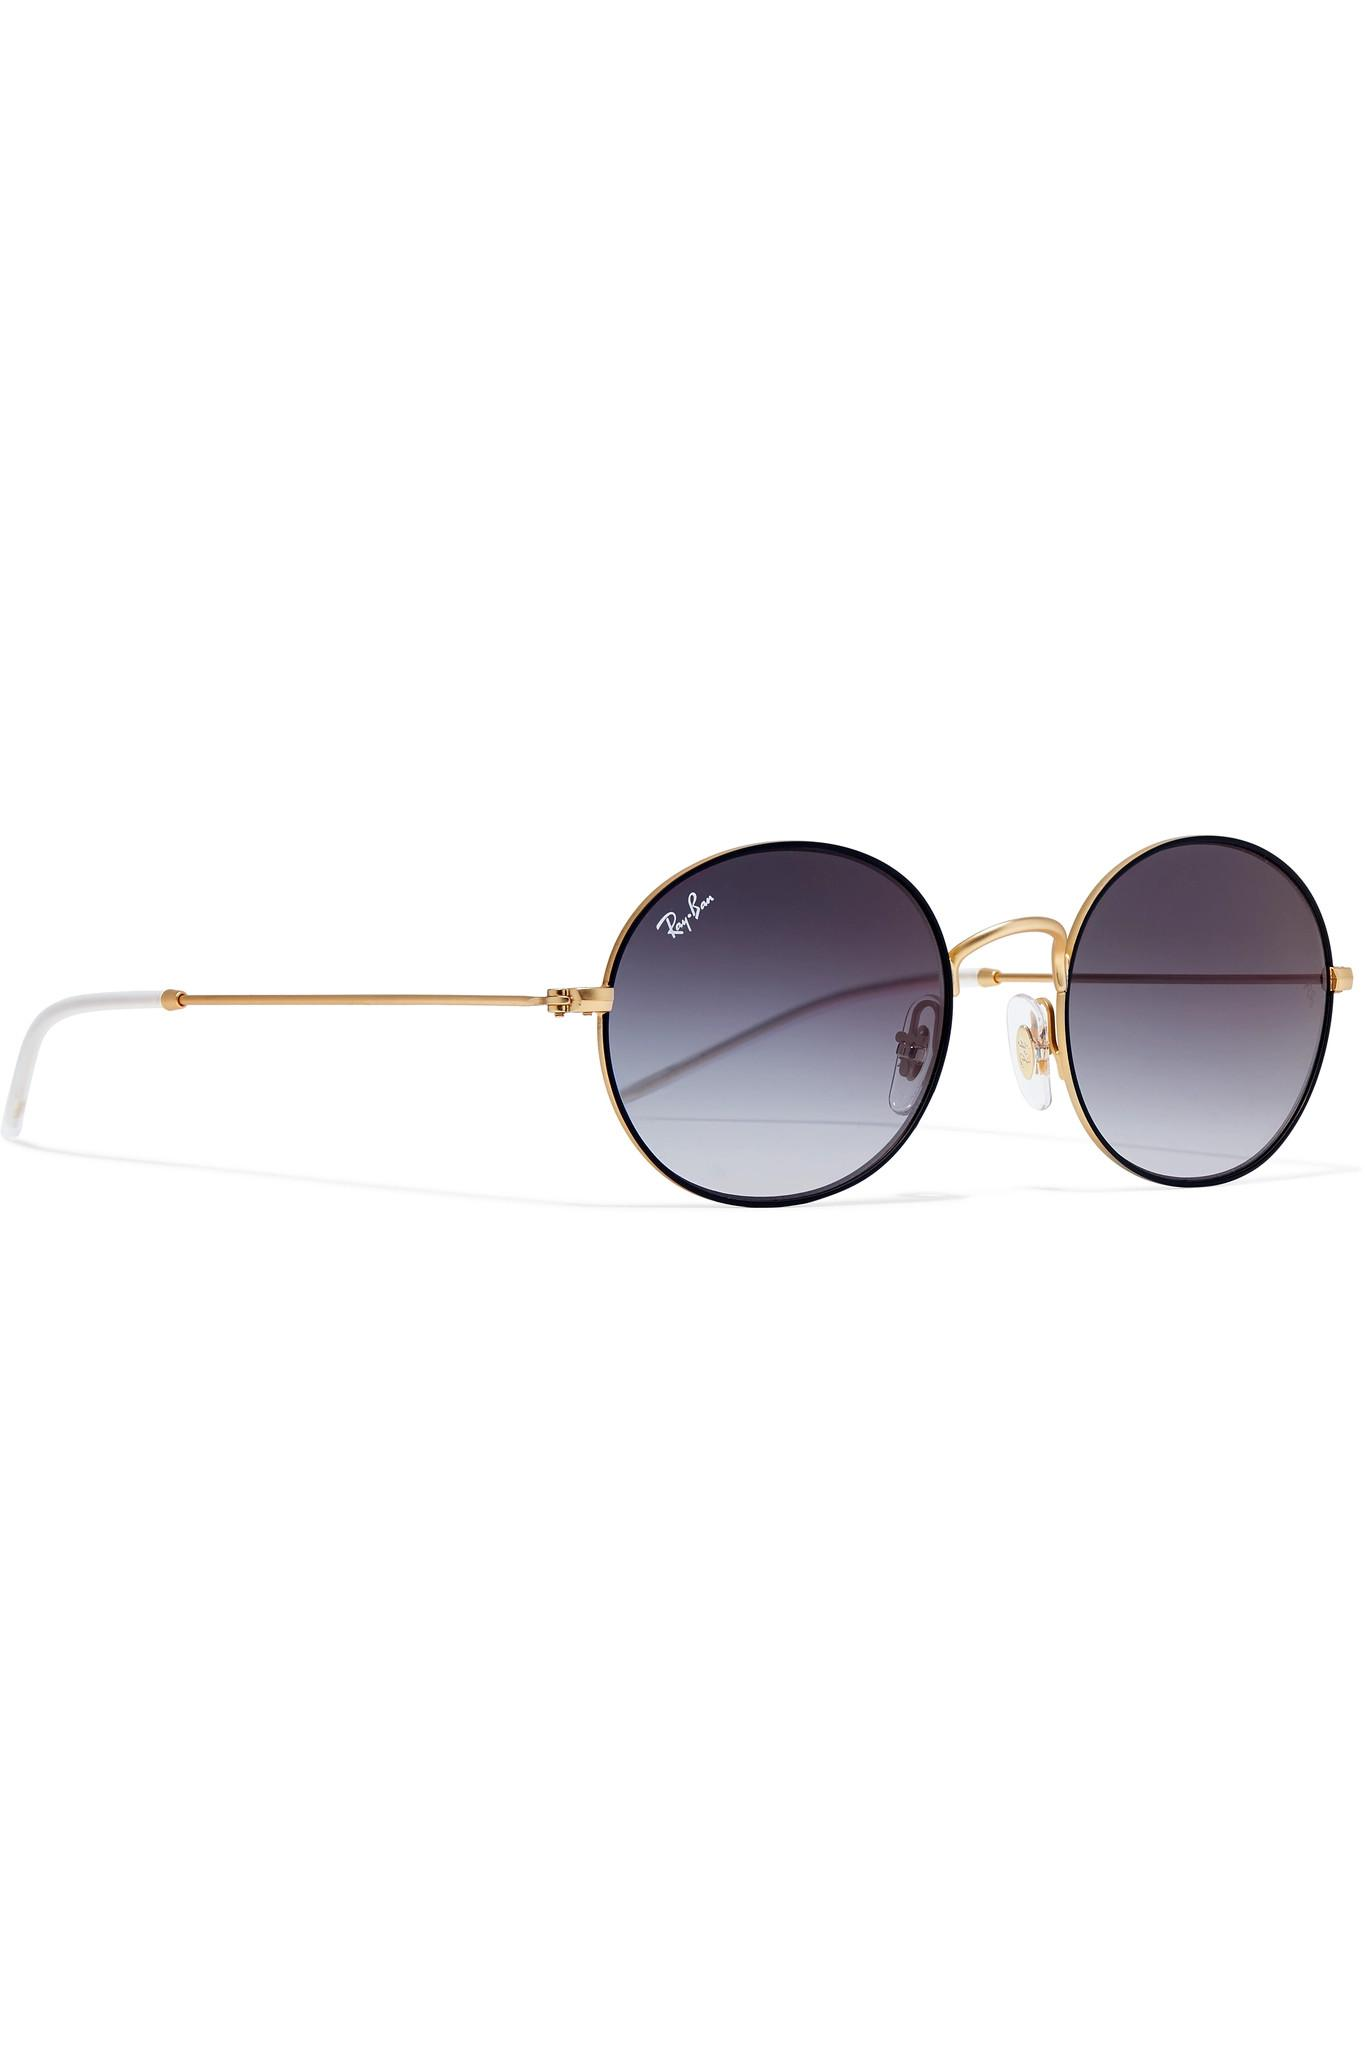 e5c79e45057 Lyst - Ray-Ban Hexagon-frame Gold-tone Sunglasses Gold One Size in ...